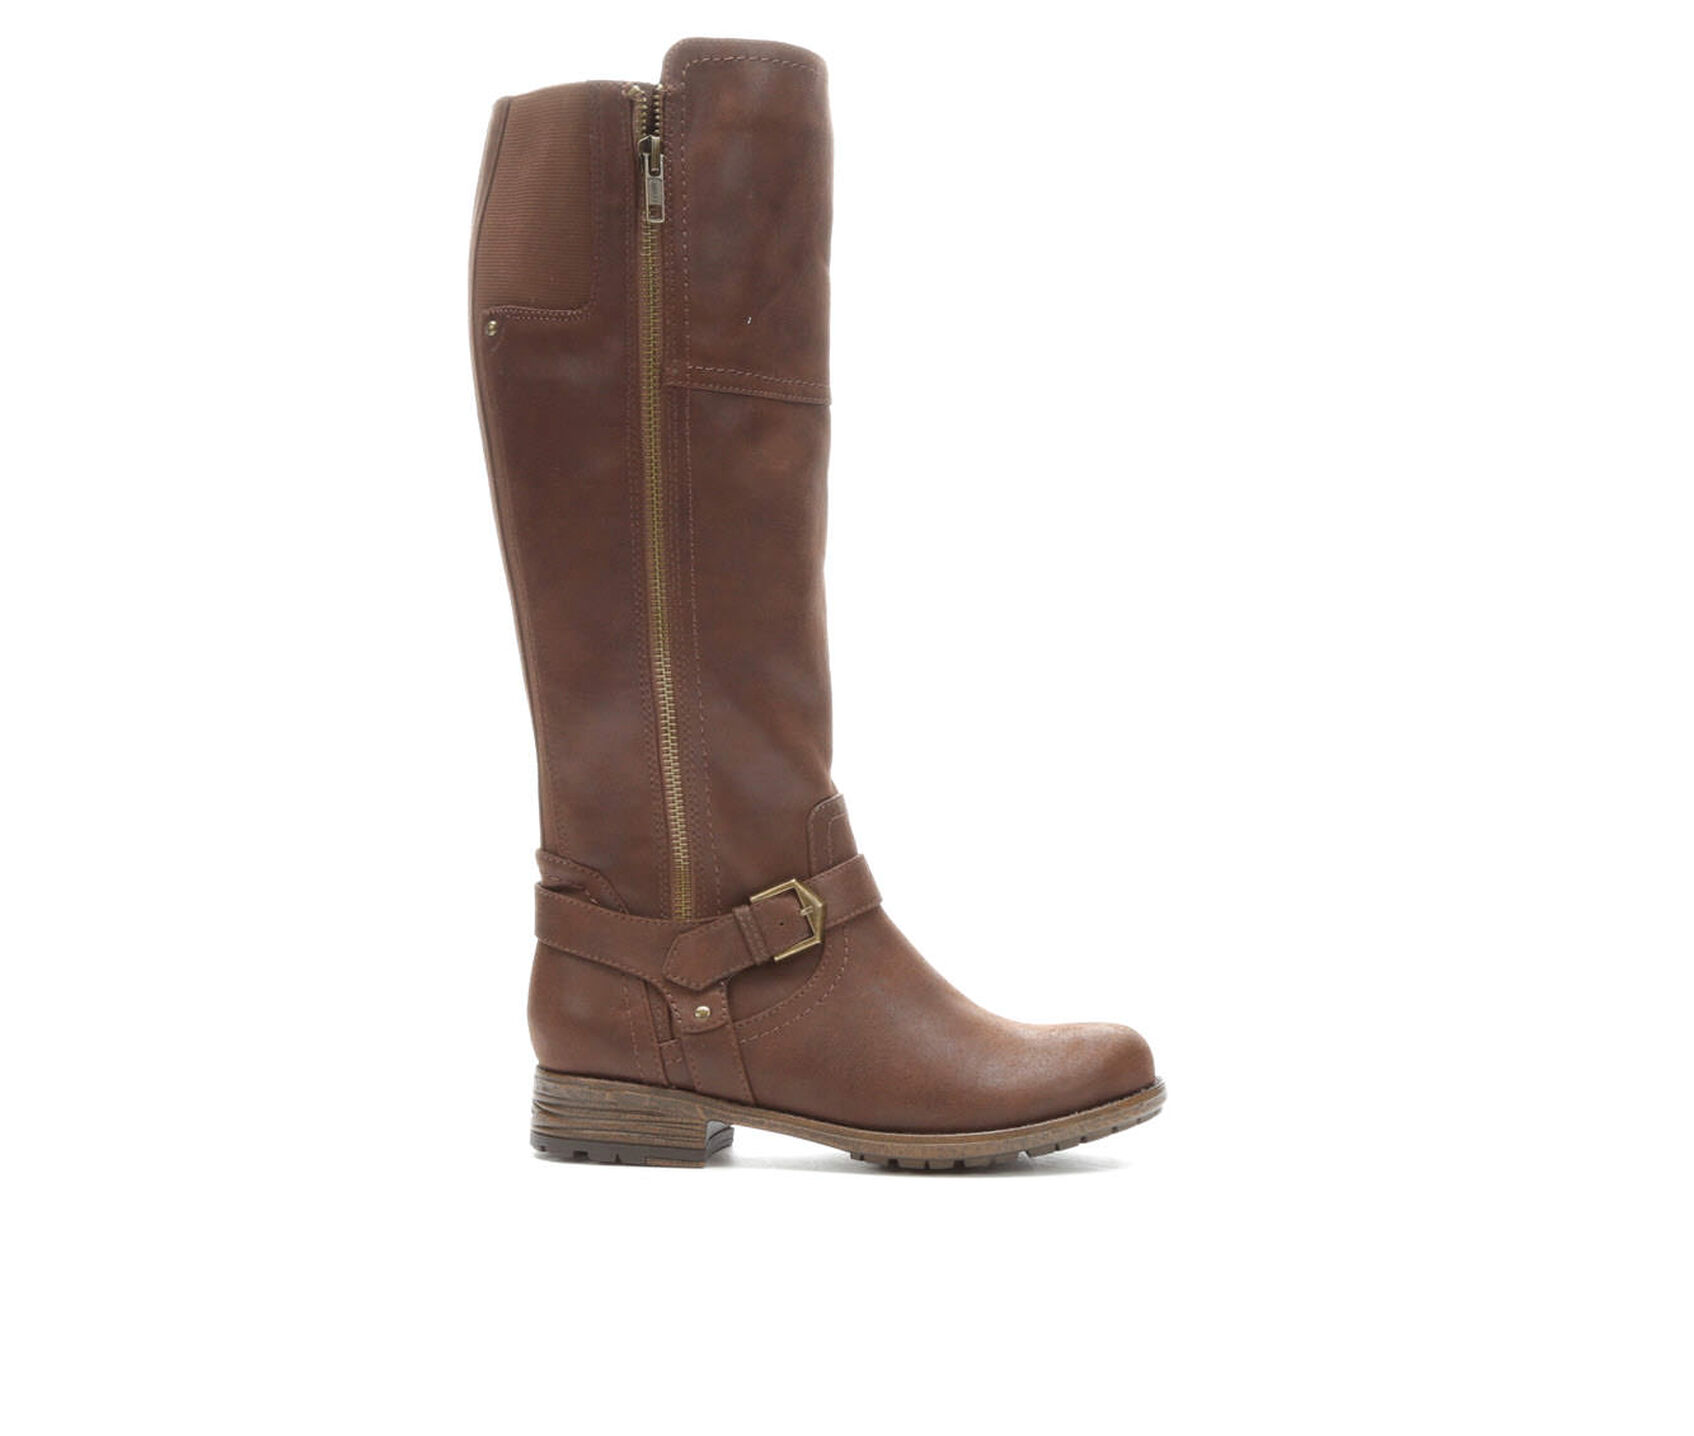 Shoe Carnival Boots Wide Calf